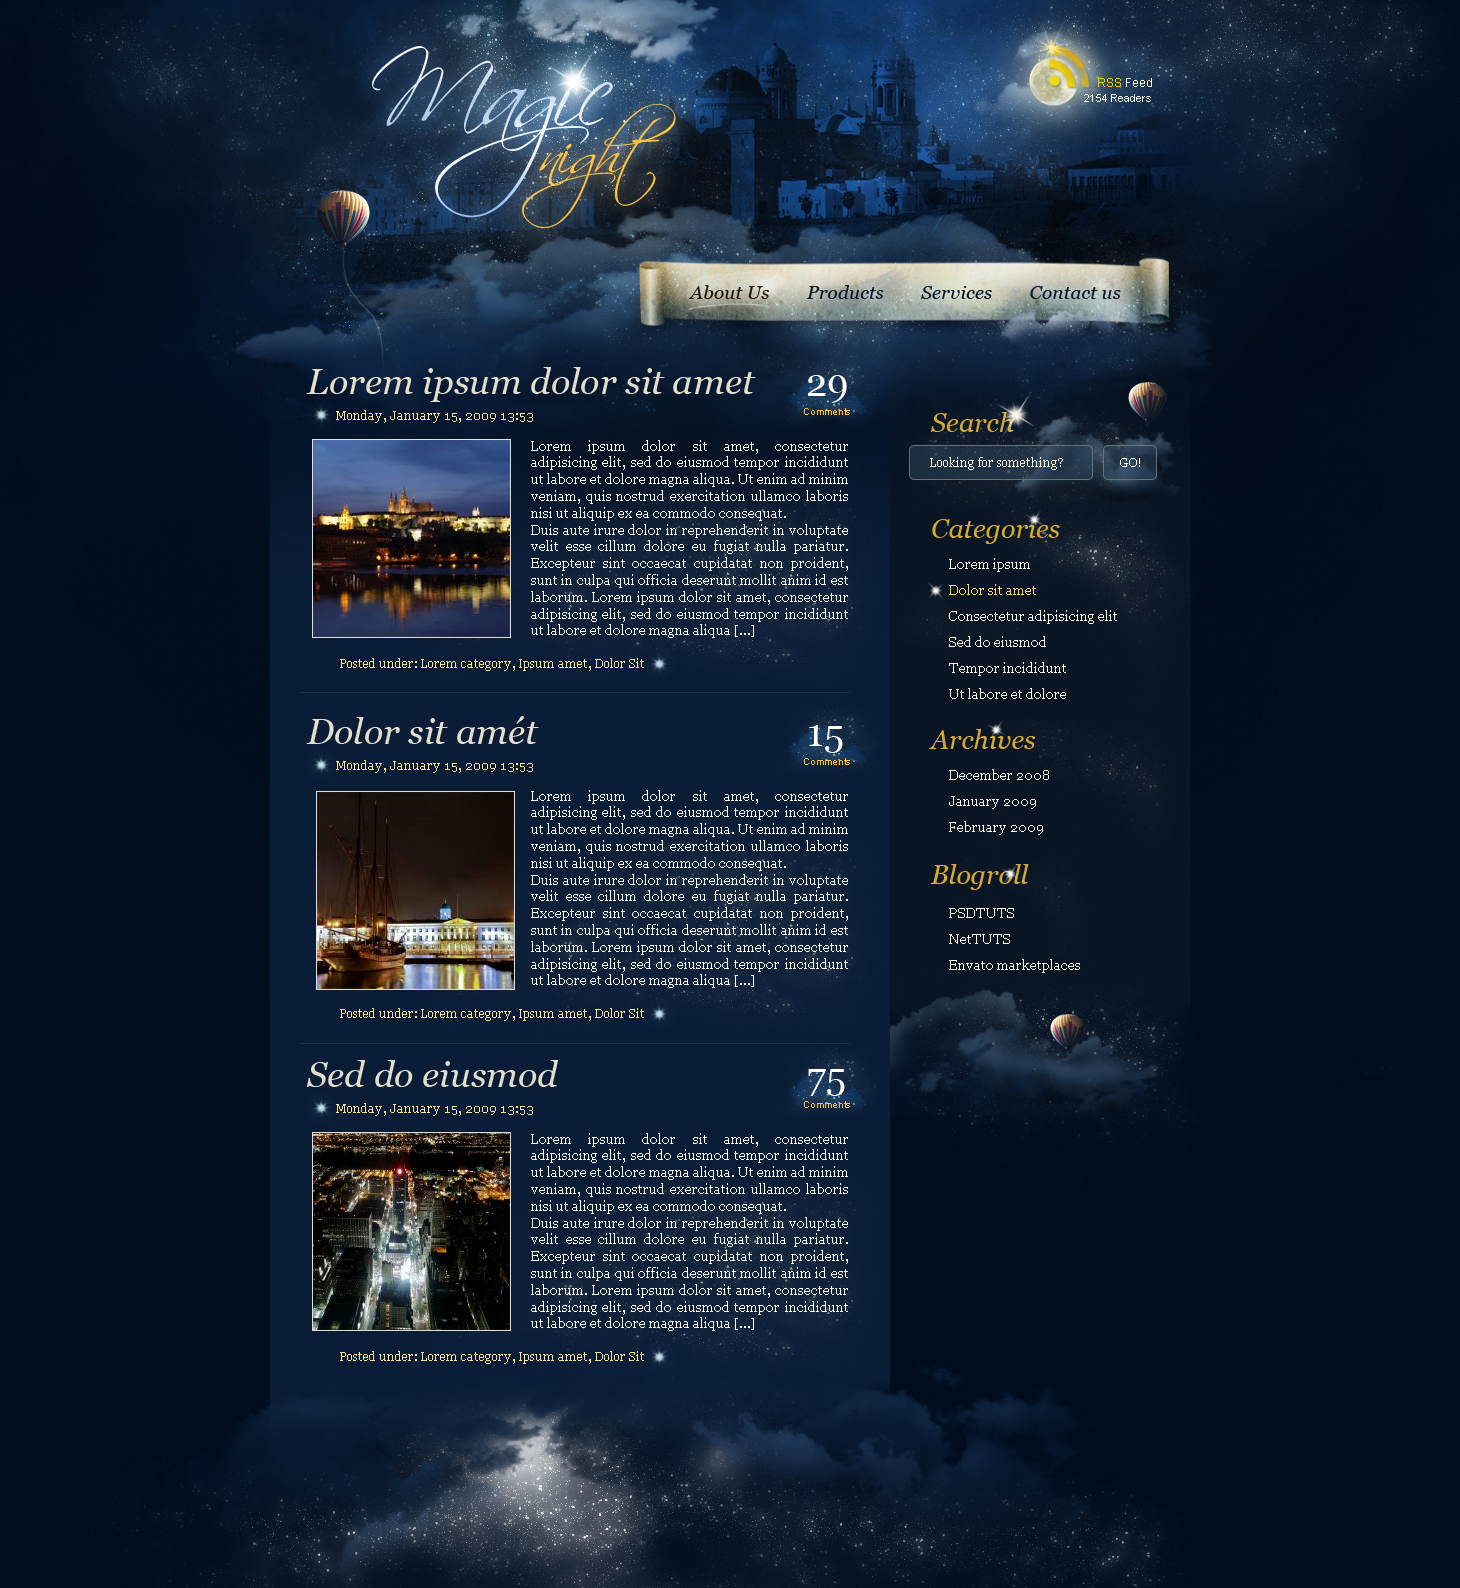 A magic night themed web design from scratch in photoshop create a magic night themed web design from scratch in photoshop baditri Image collections